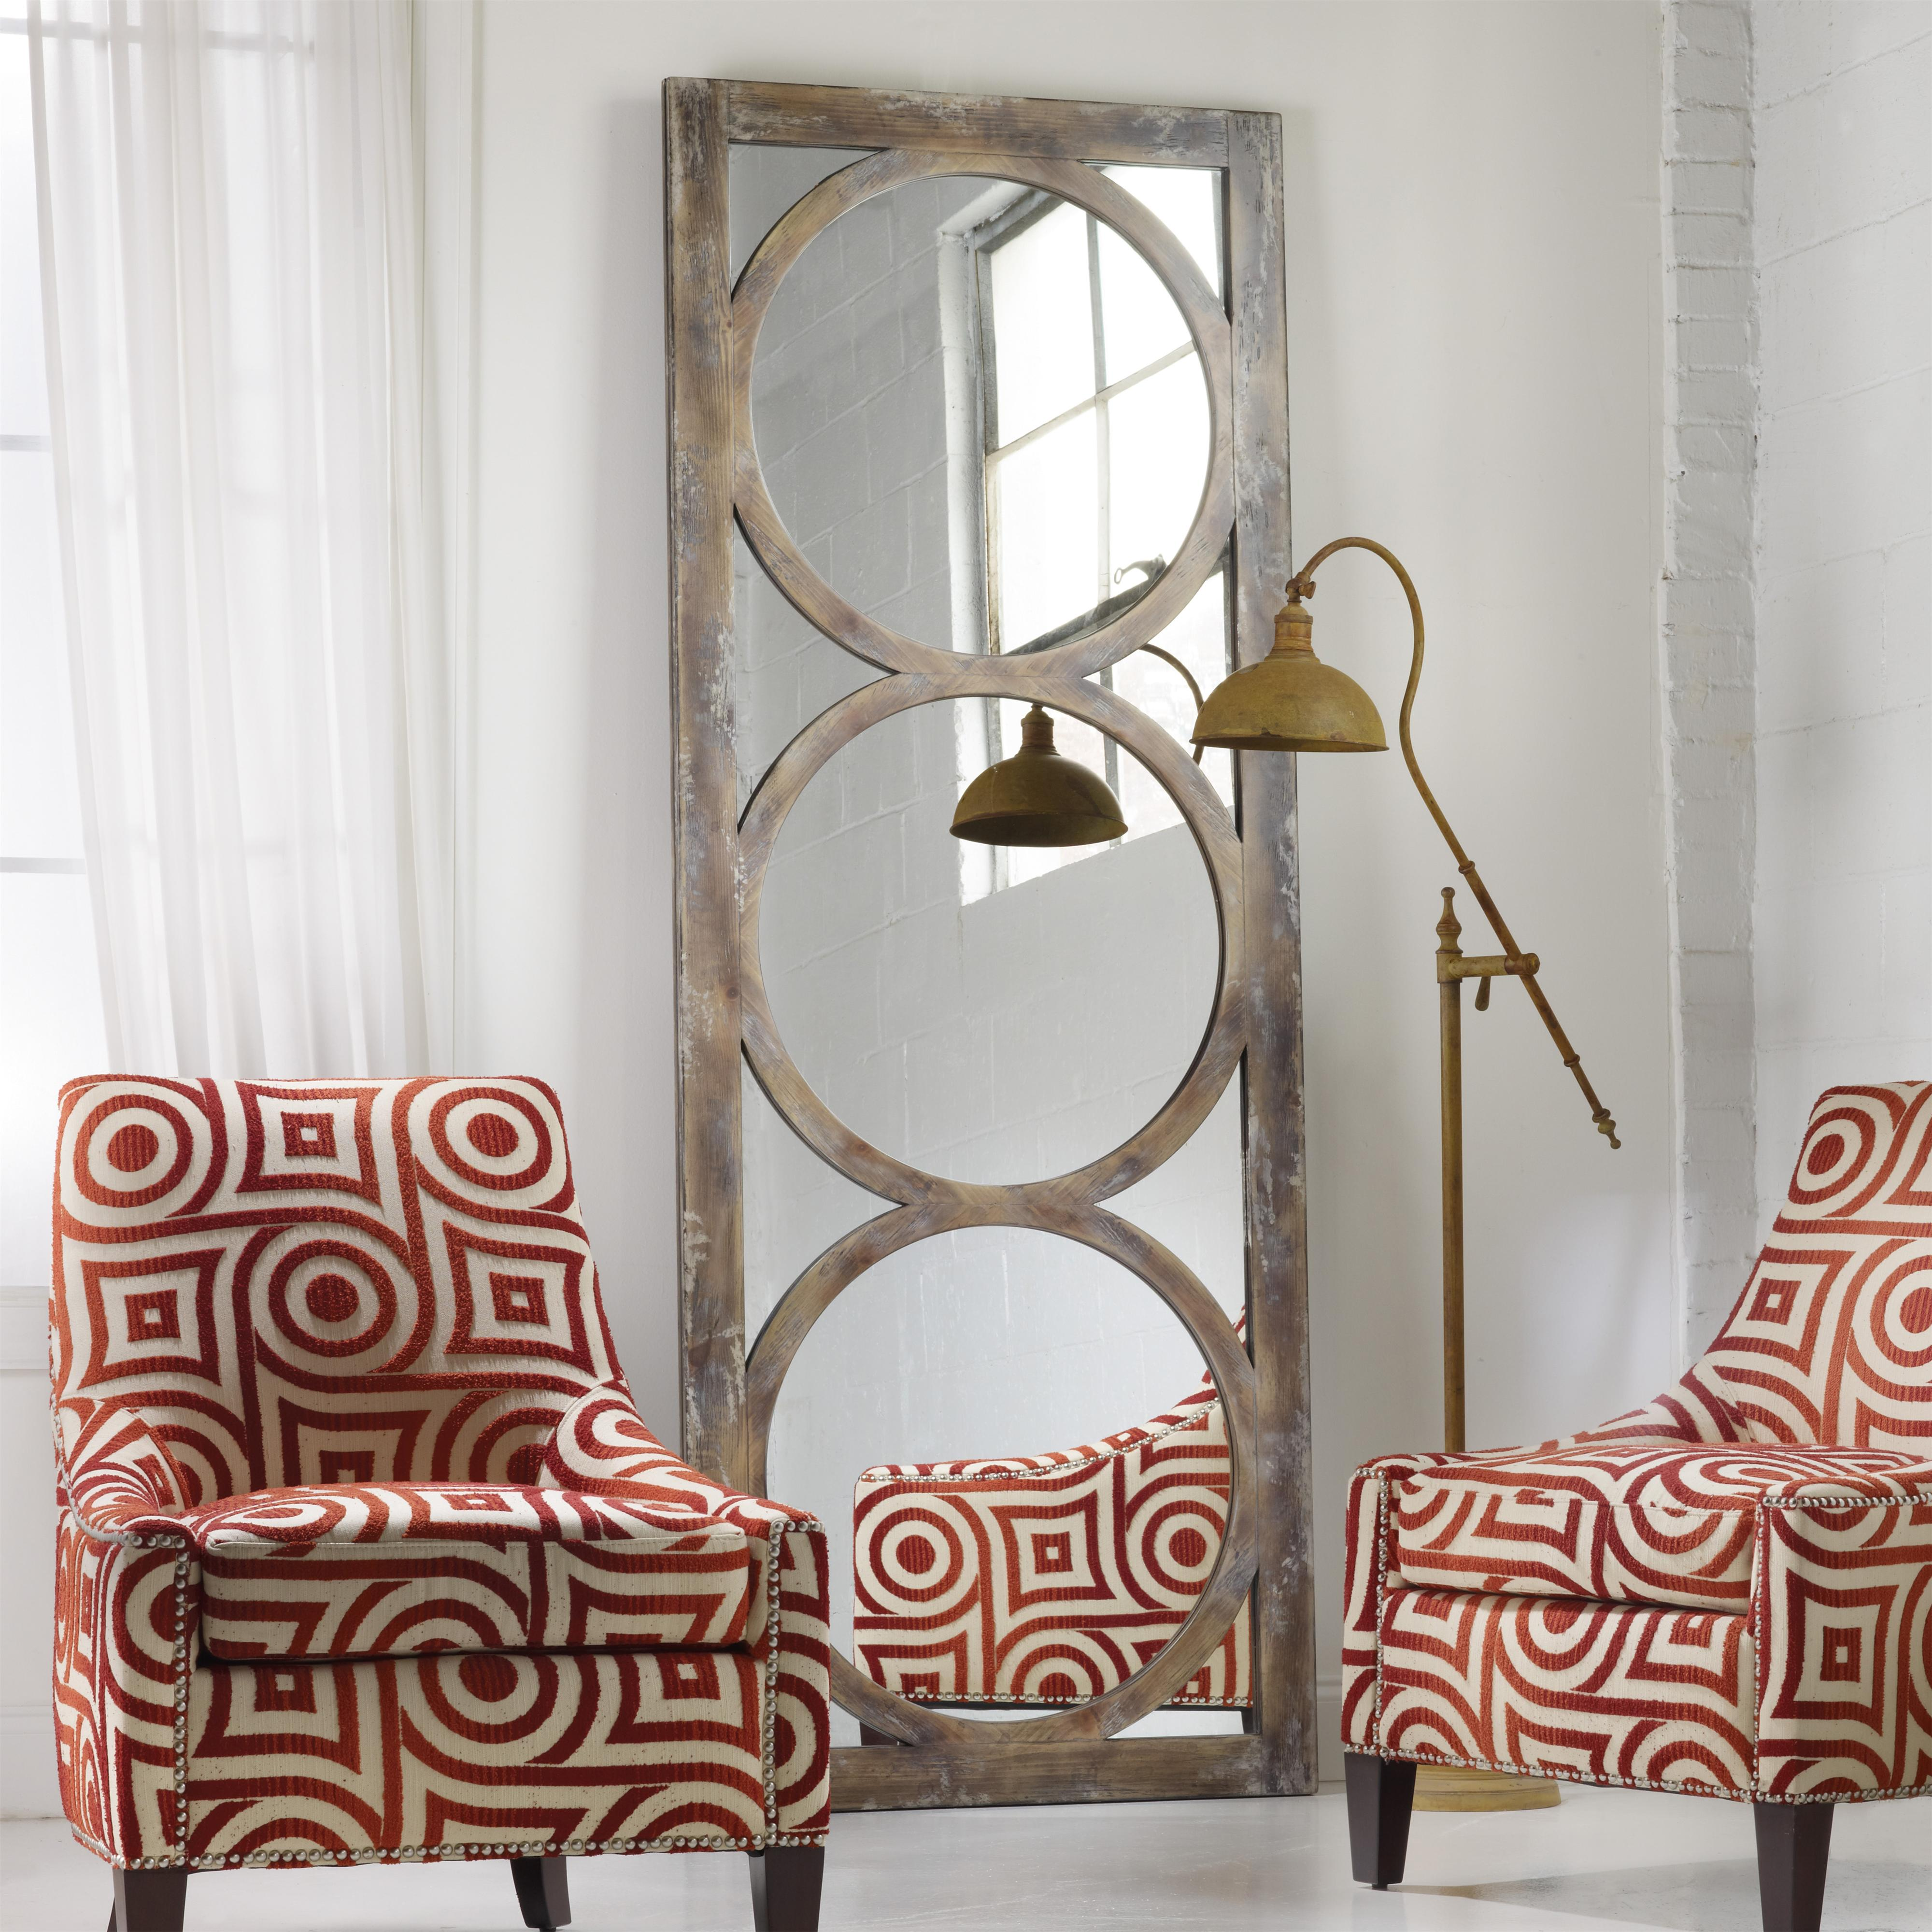 Hooker Furniture Mélange Encircled Floor Mirror - Item Number: 638-50033